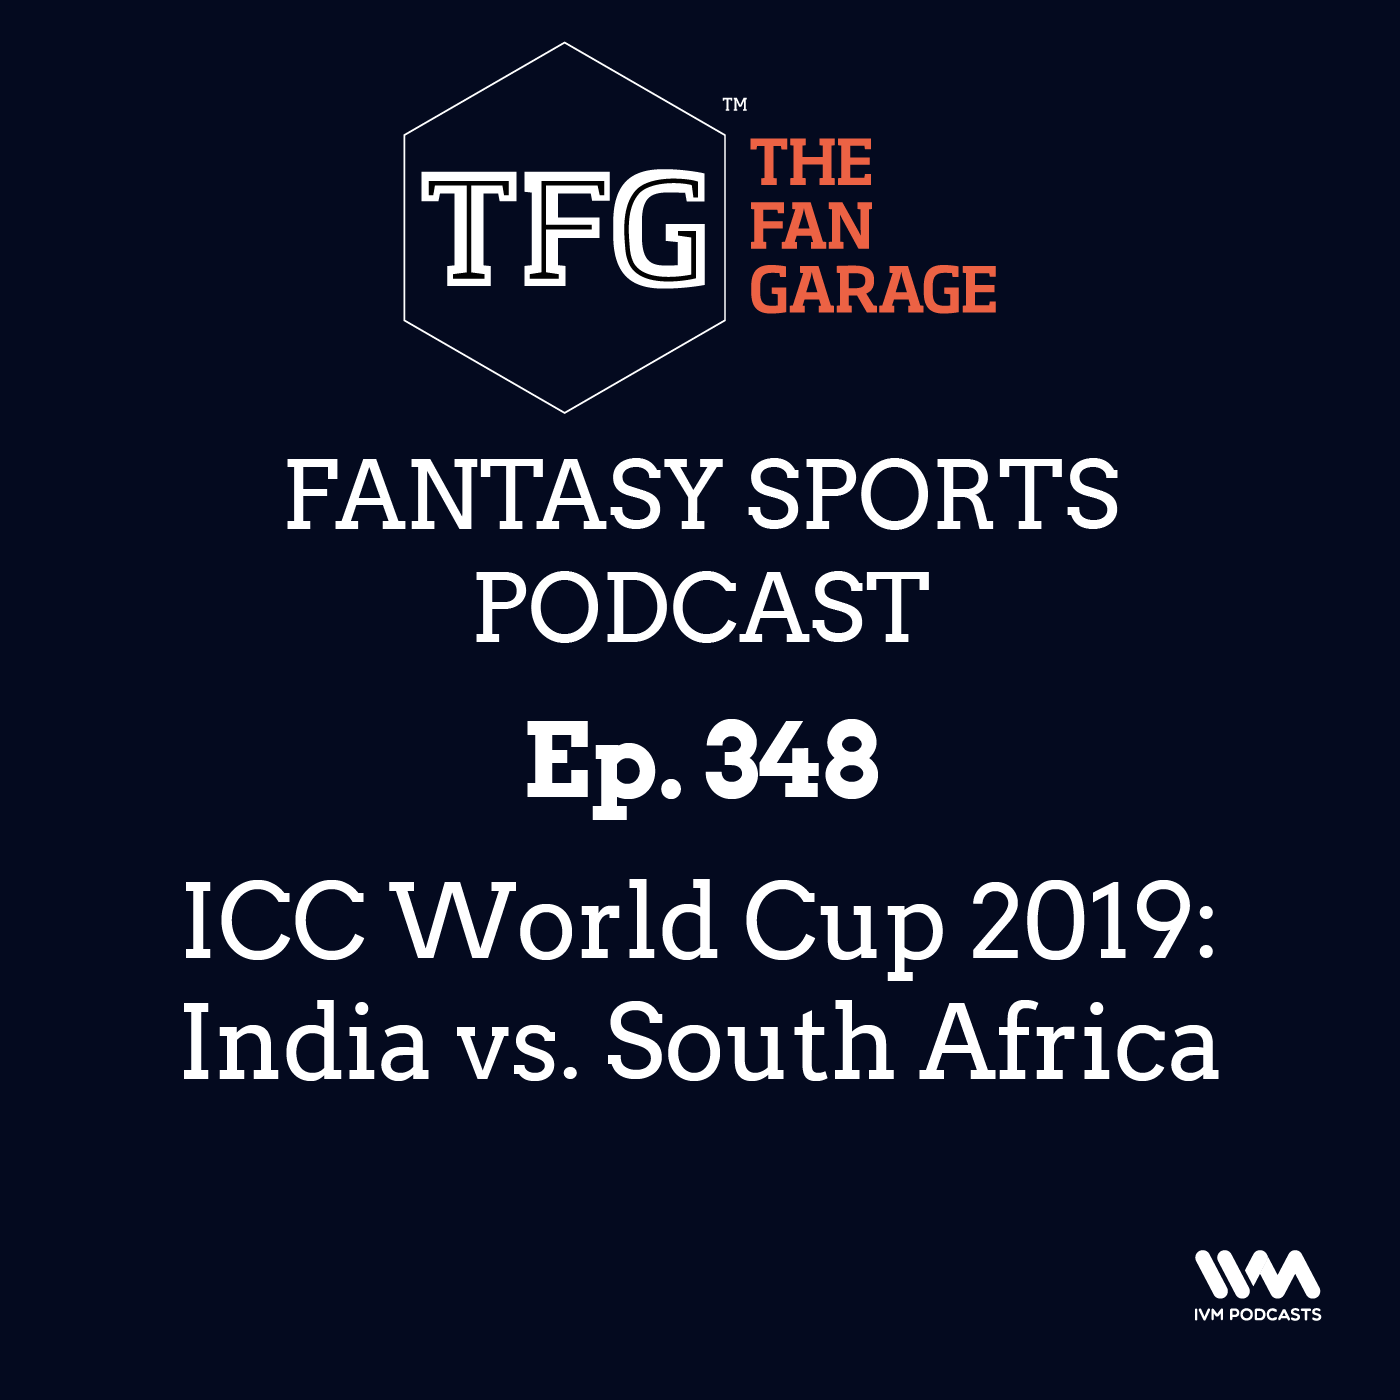 TFG Fantasy Sports Podcast Ep. 348: ICC World Cup 2019: India vs. South Africa